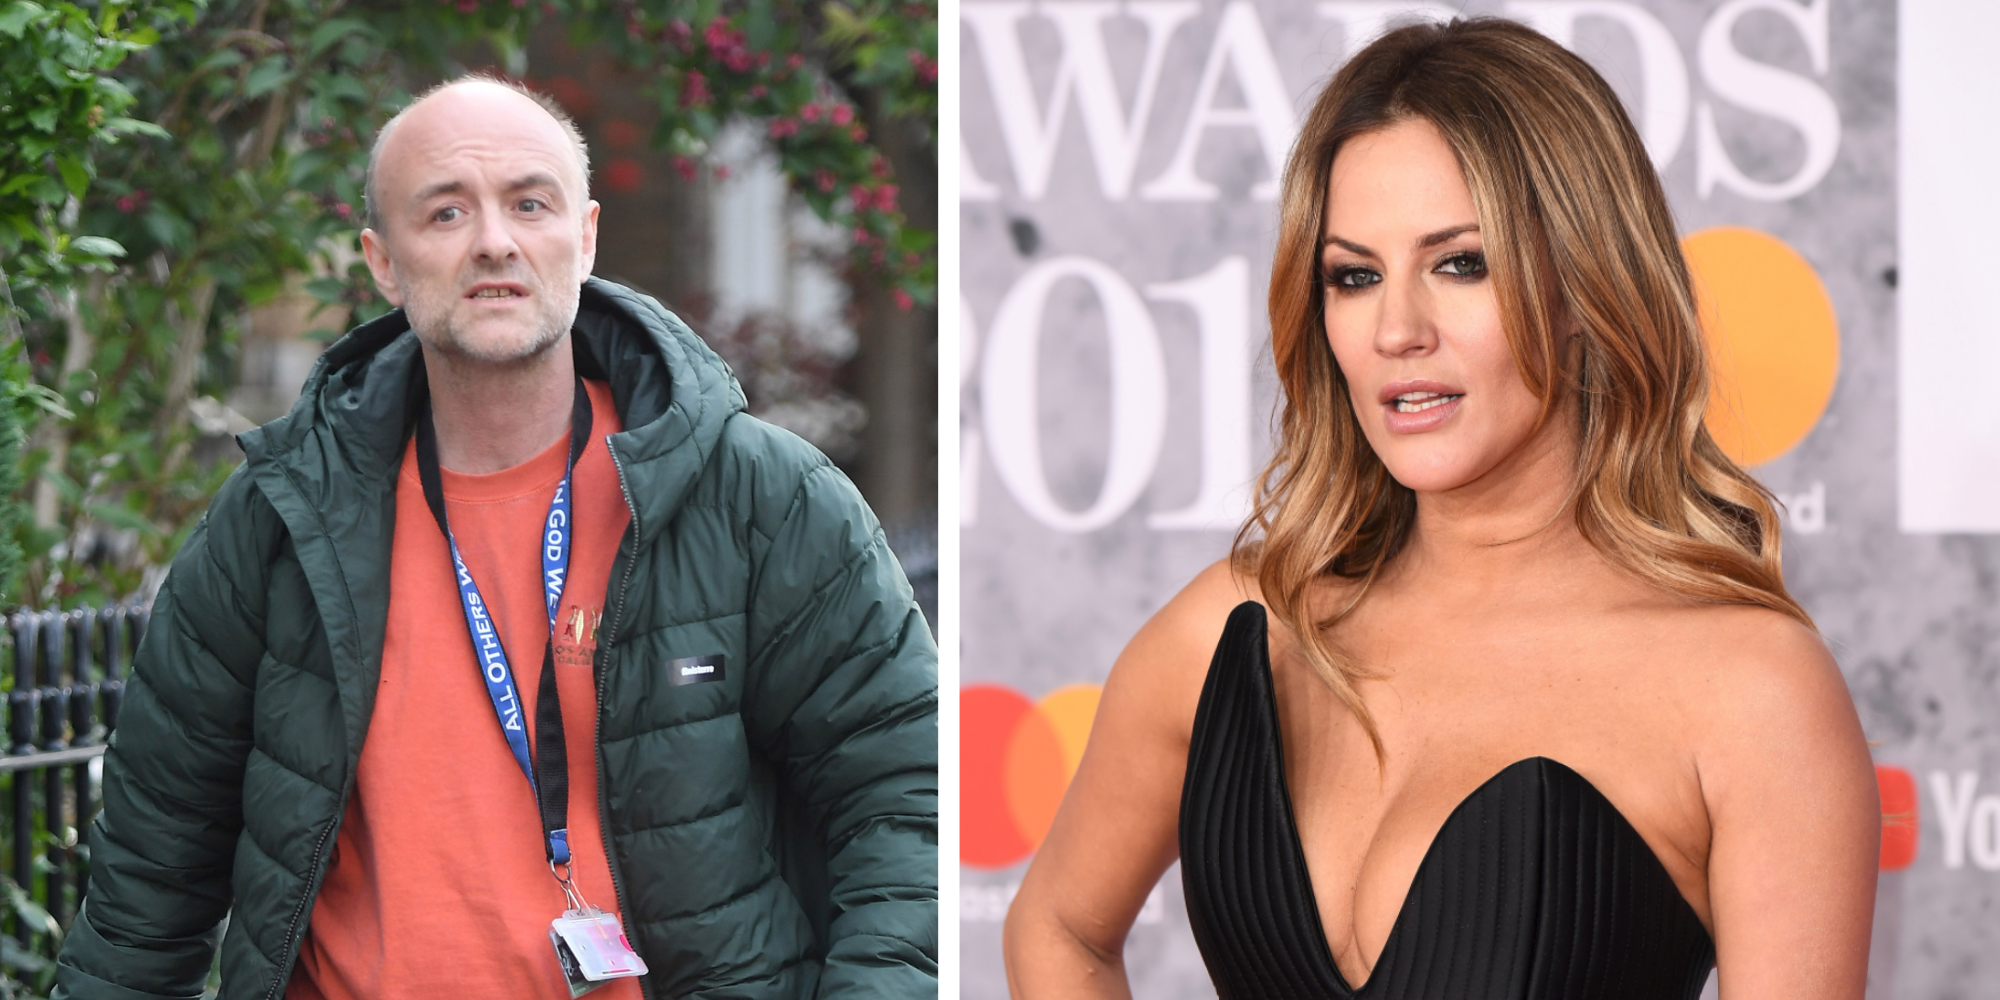 Here's why people are wrong to compare Dominic Cummings and Caroline Flack